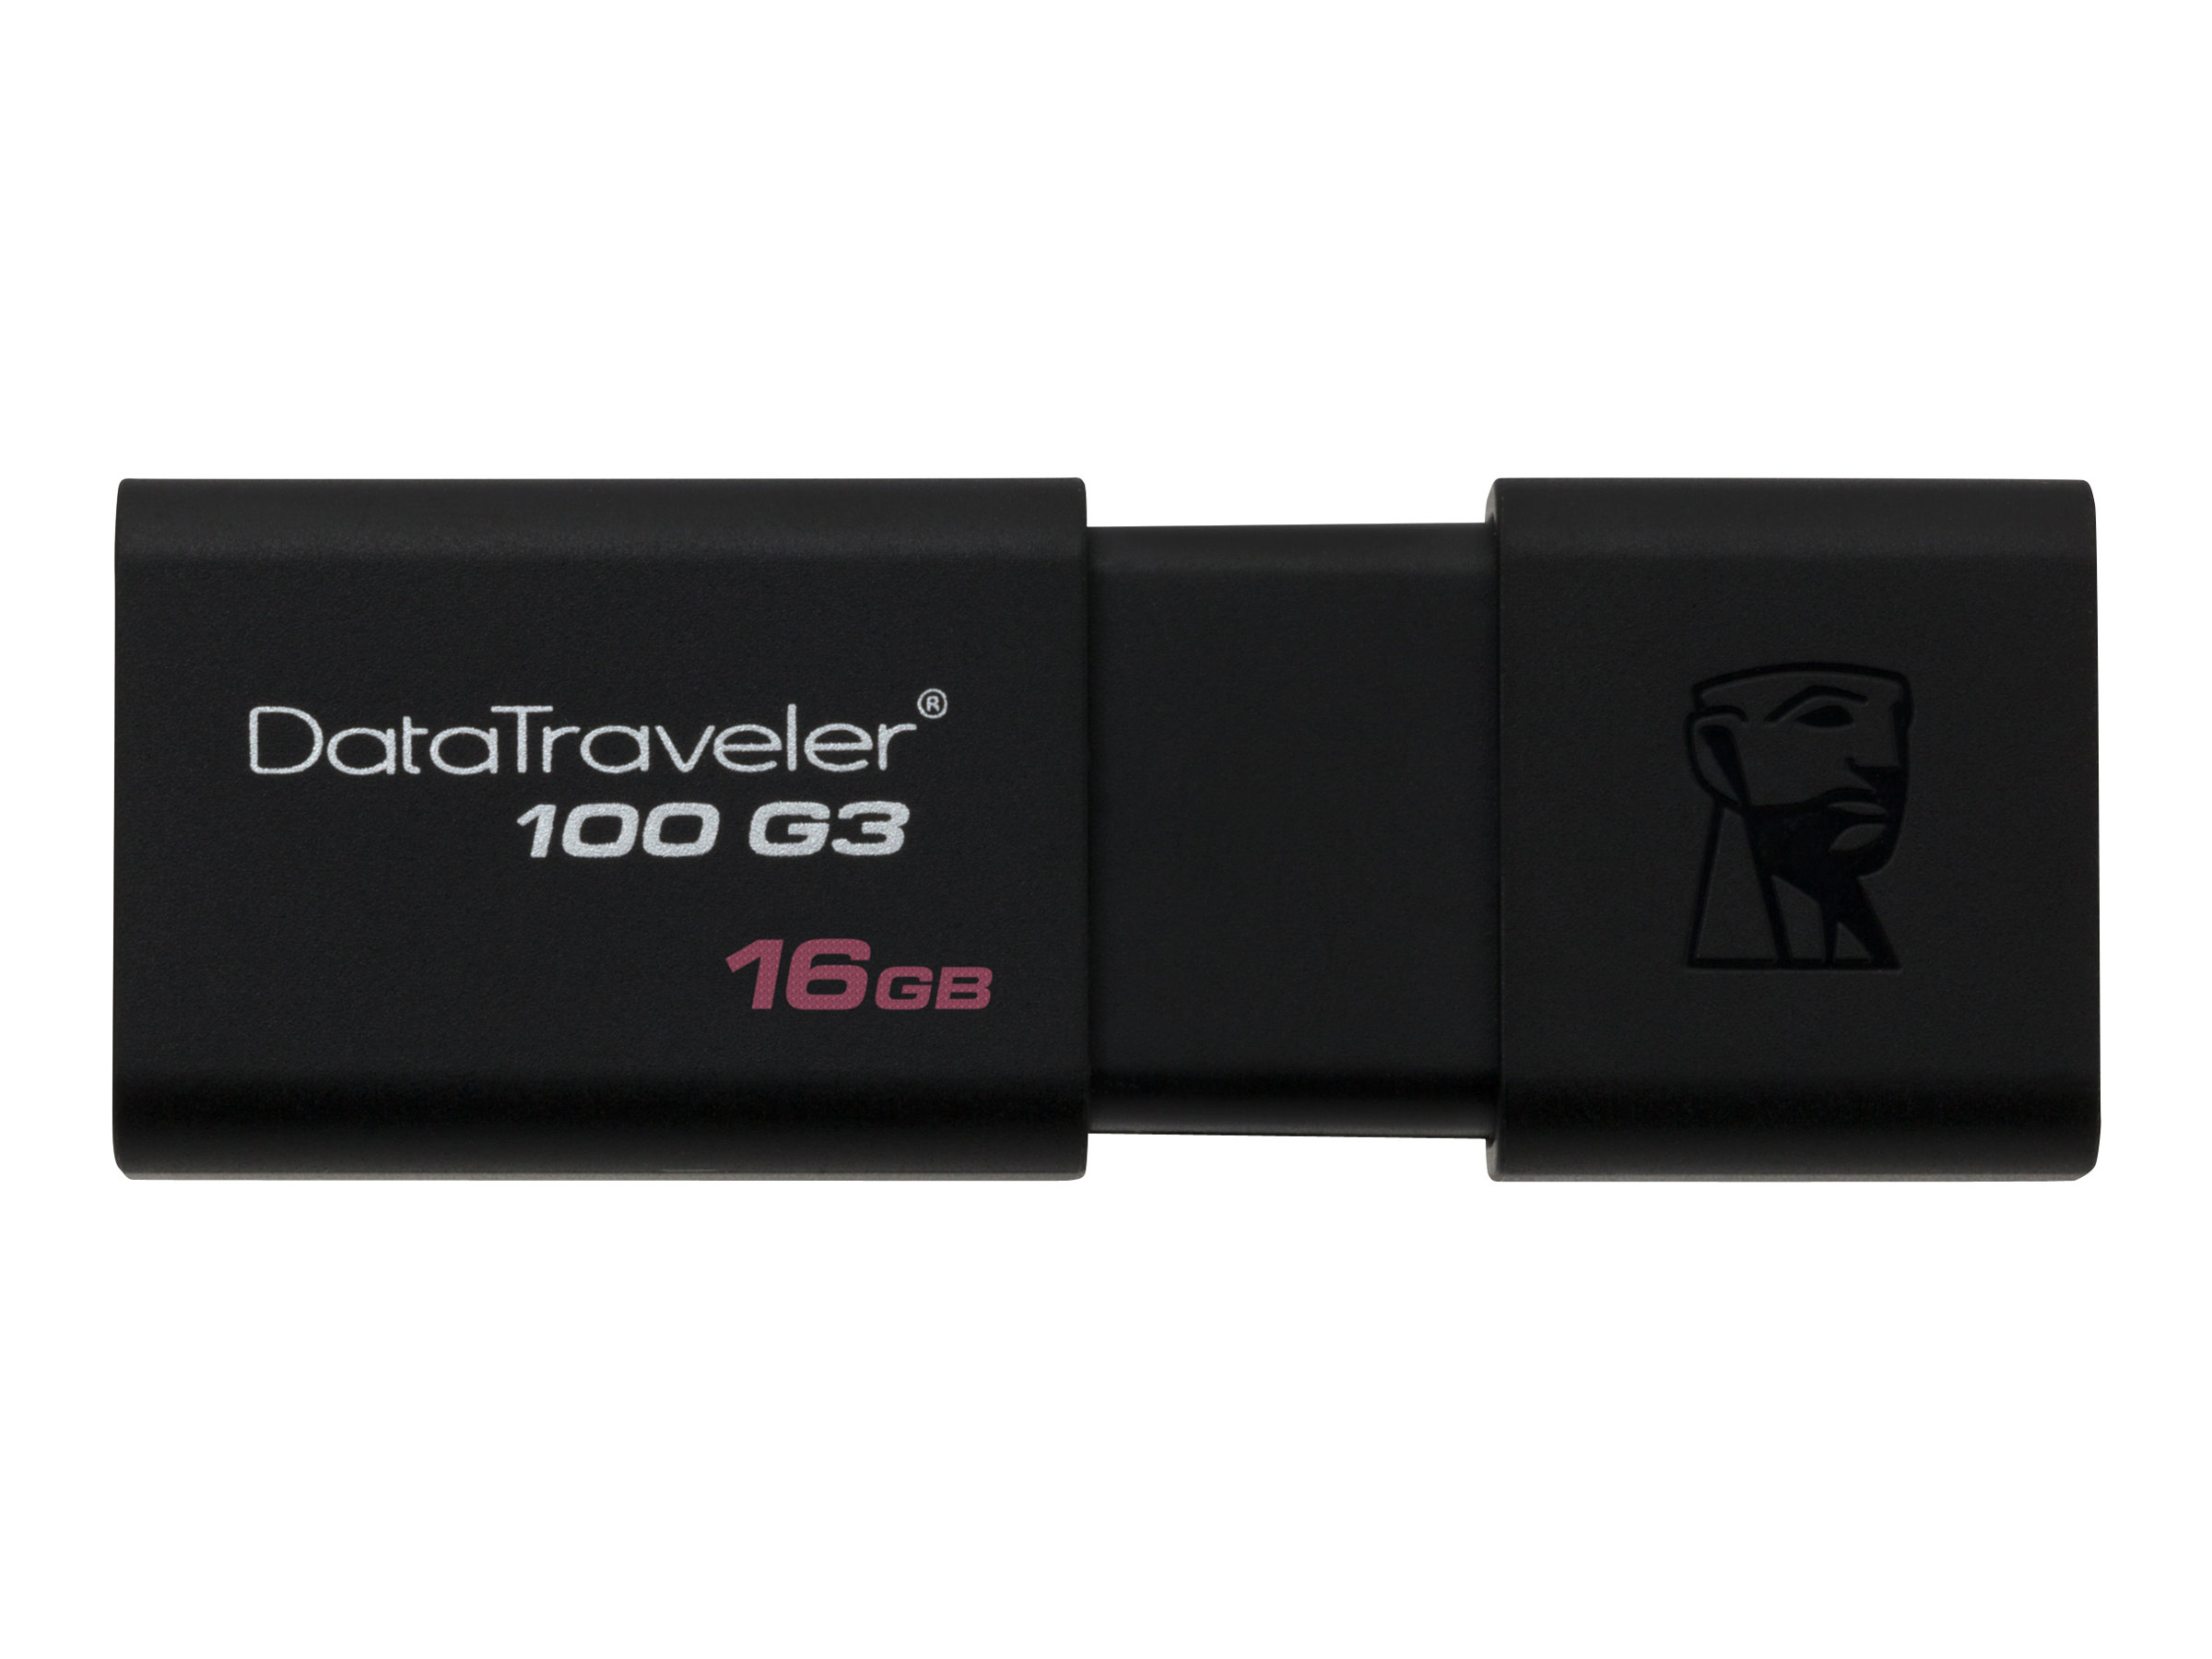 Kingston DataTraveler 100 G3 - USB-Flash-Laufwerk - 16 GB - USB 3.0 - Schwarz